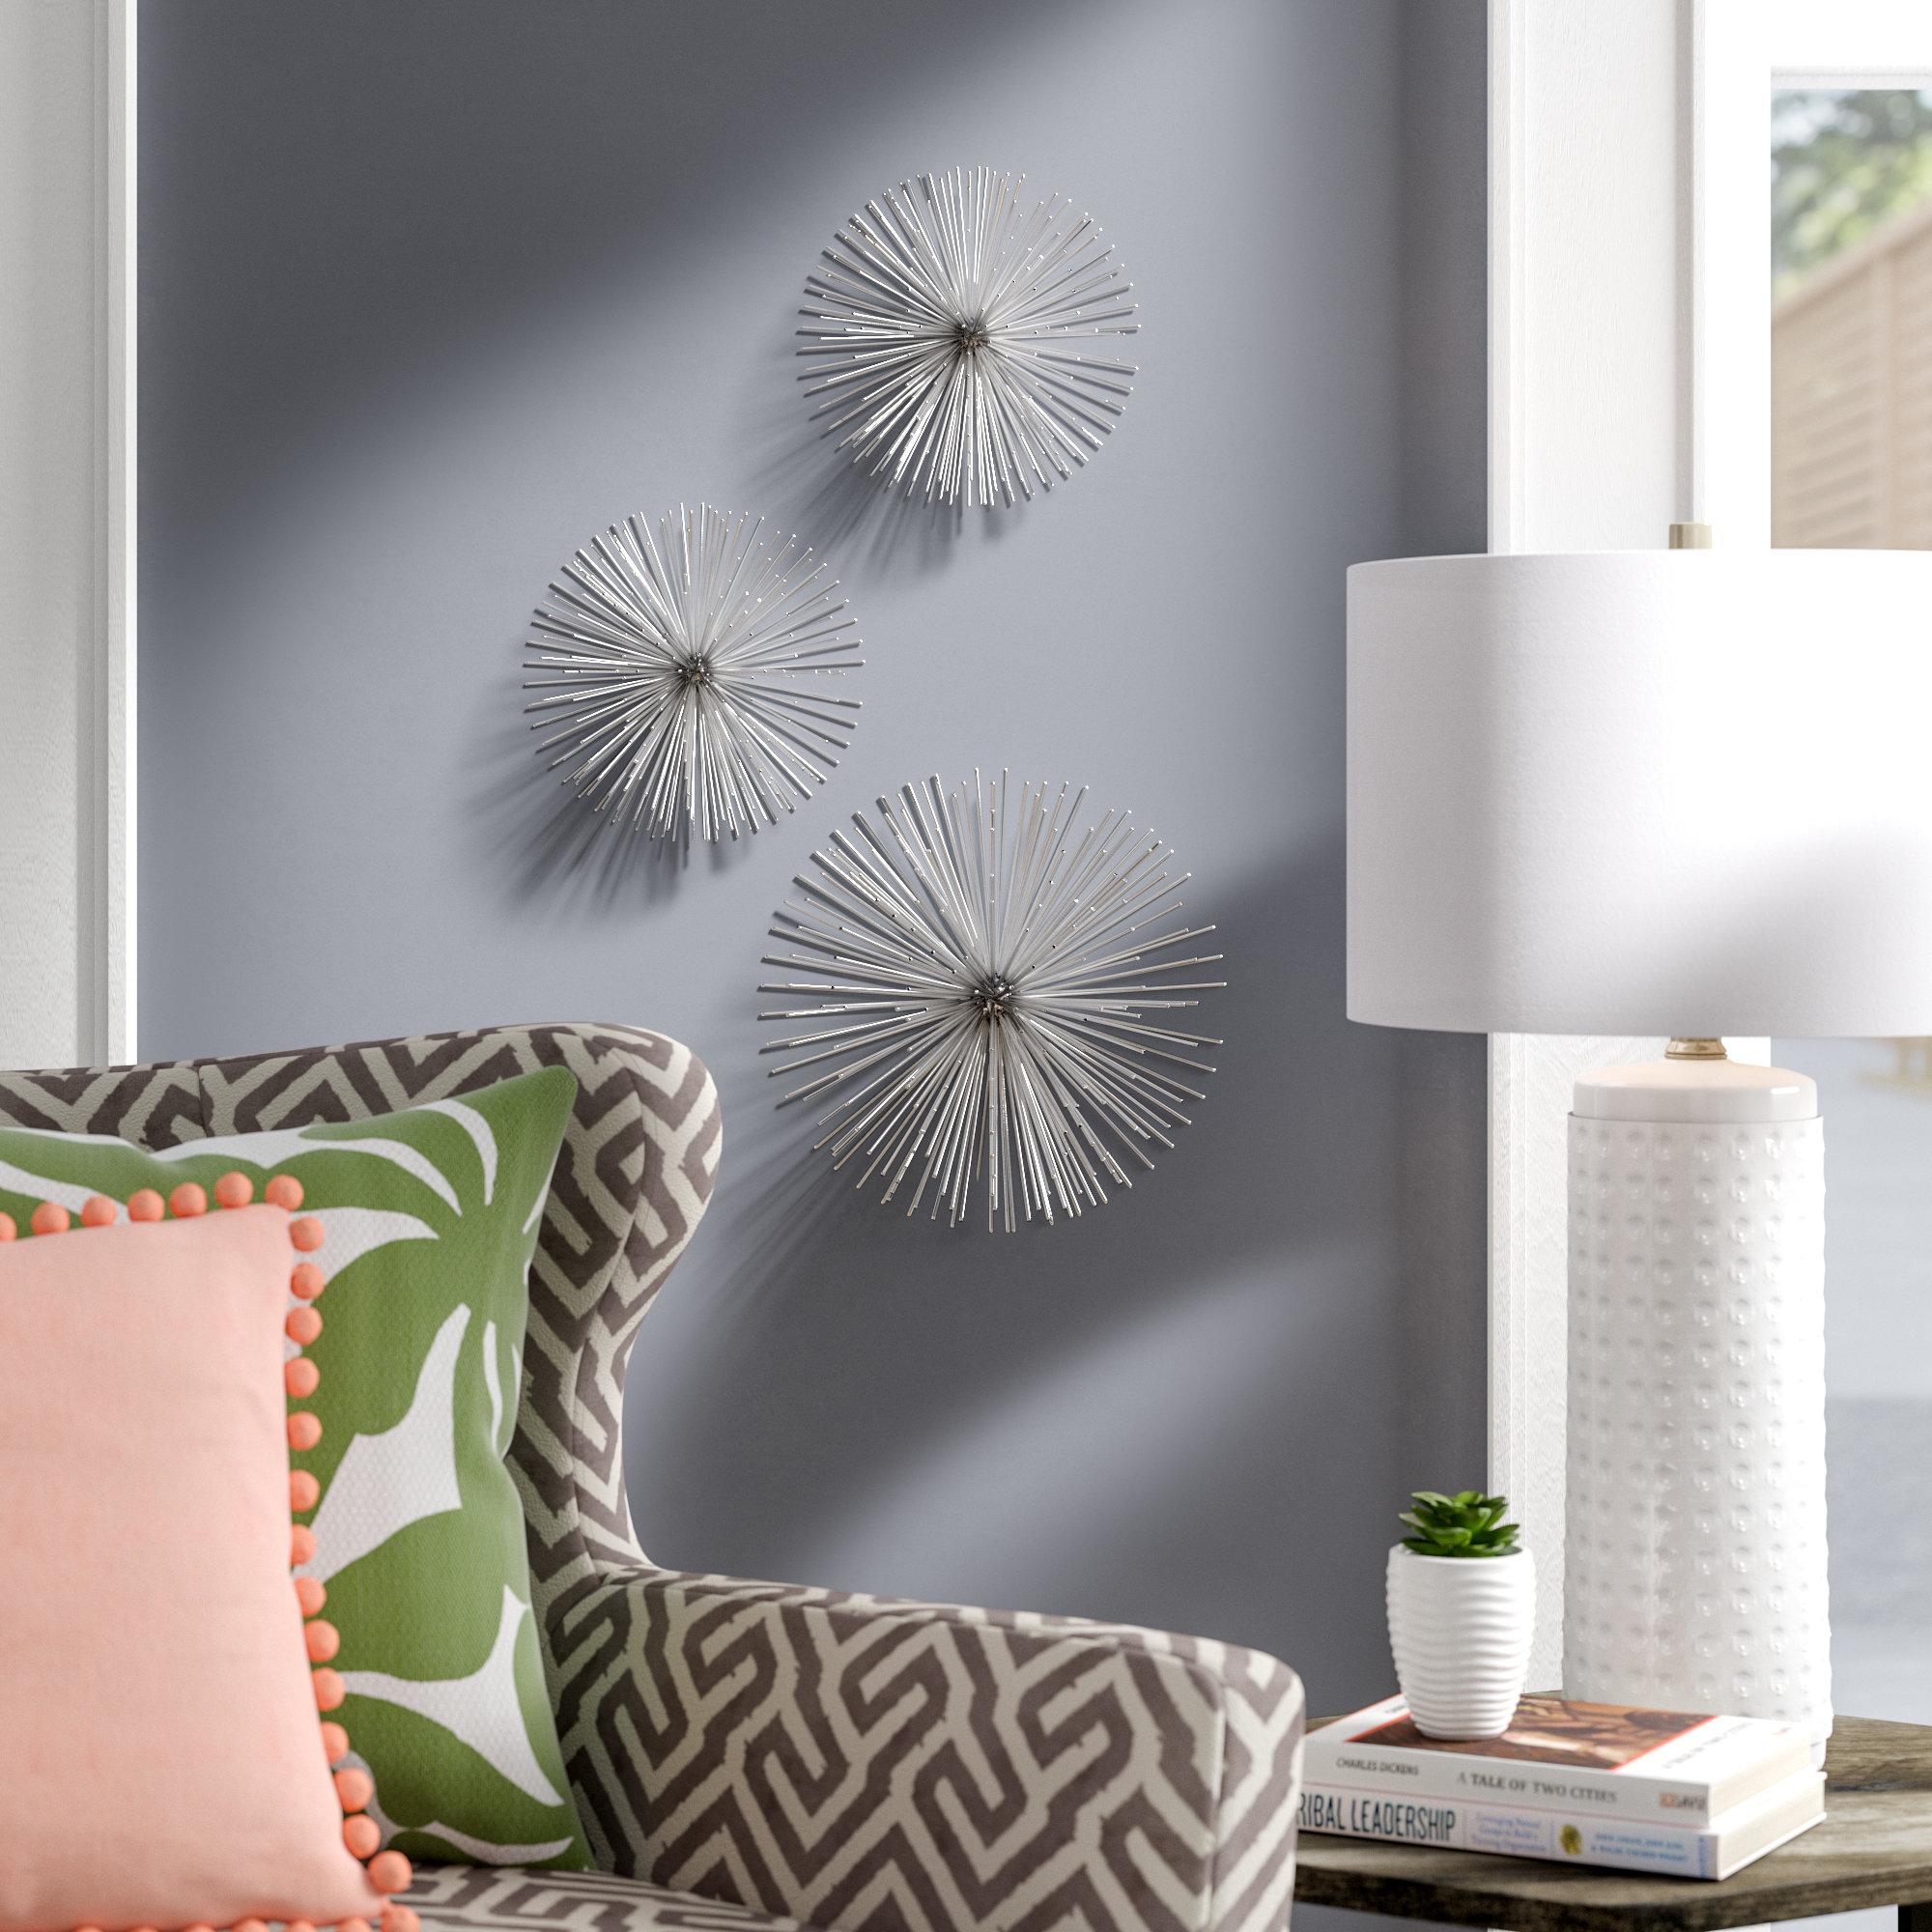 Alvarez Starburst Wall Décor Throughout Rings Wall Decor By Wrought Studio (View 21 of 30)